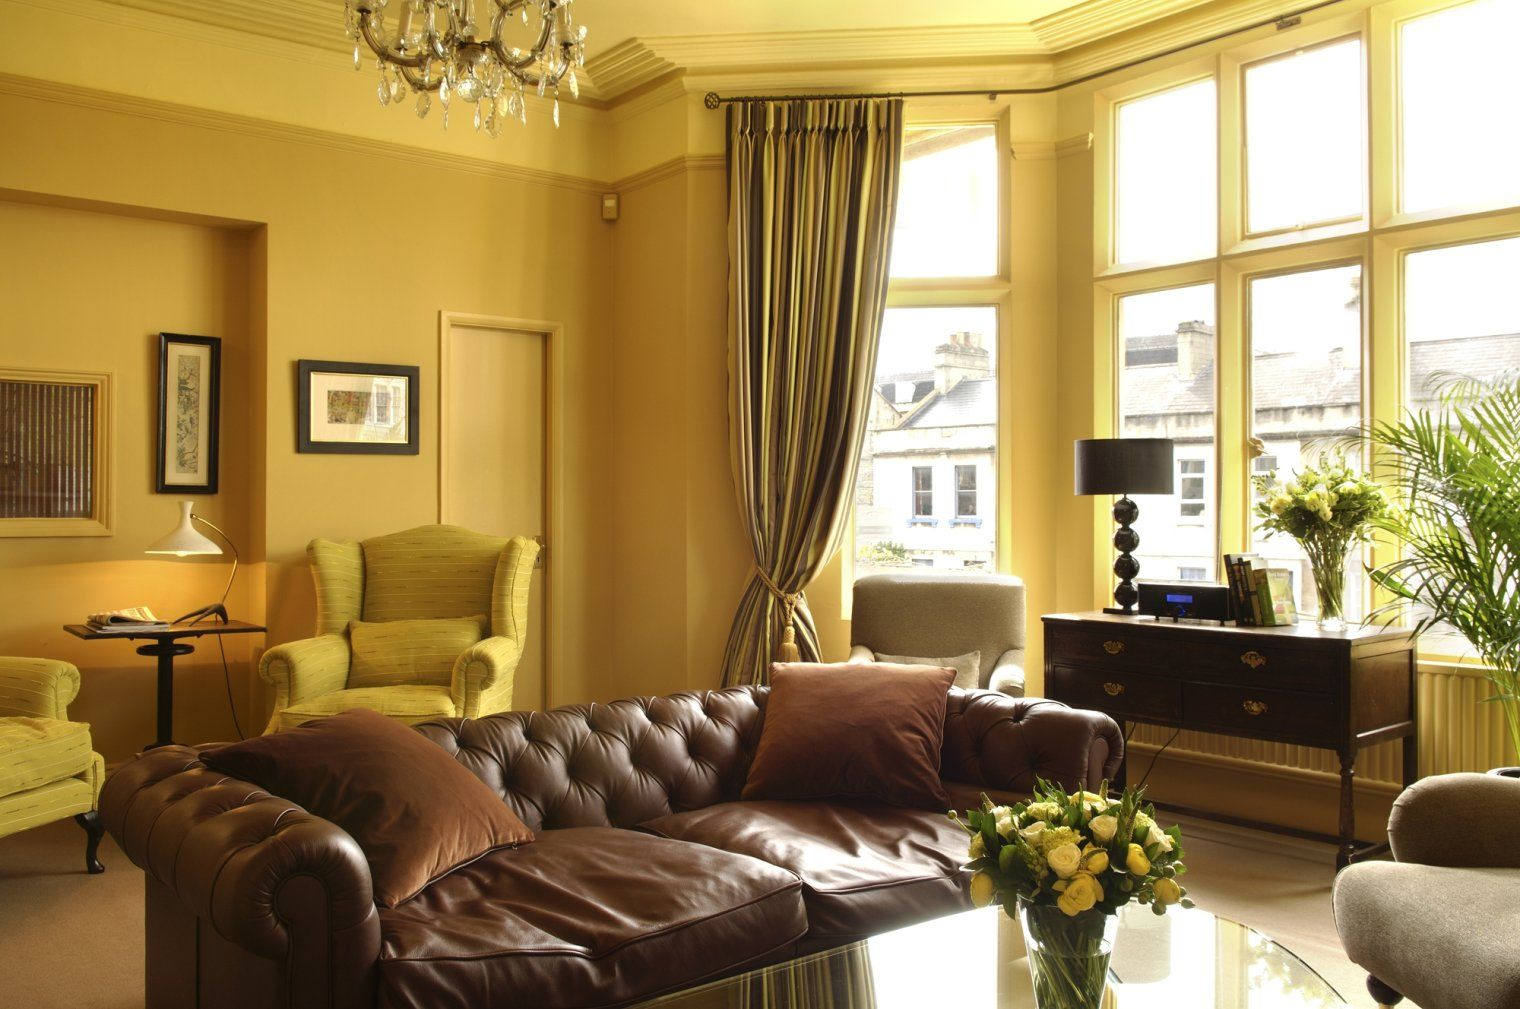 decorating ideas living rooms yellow walls Google Search front